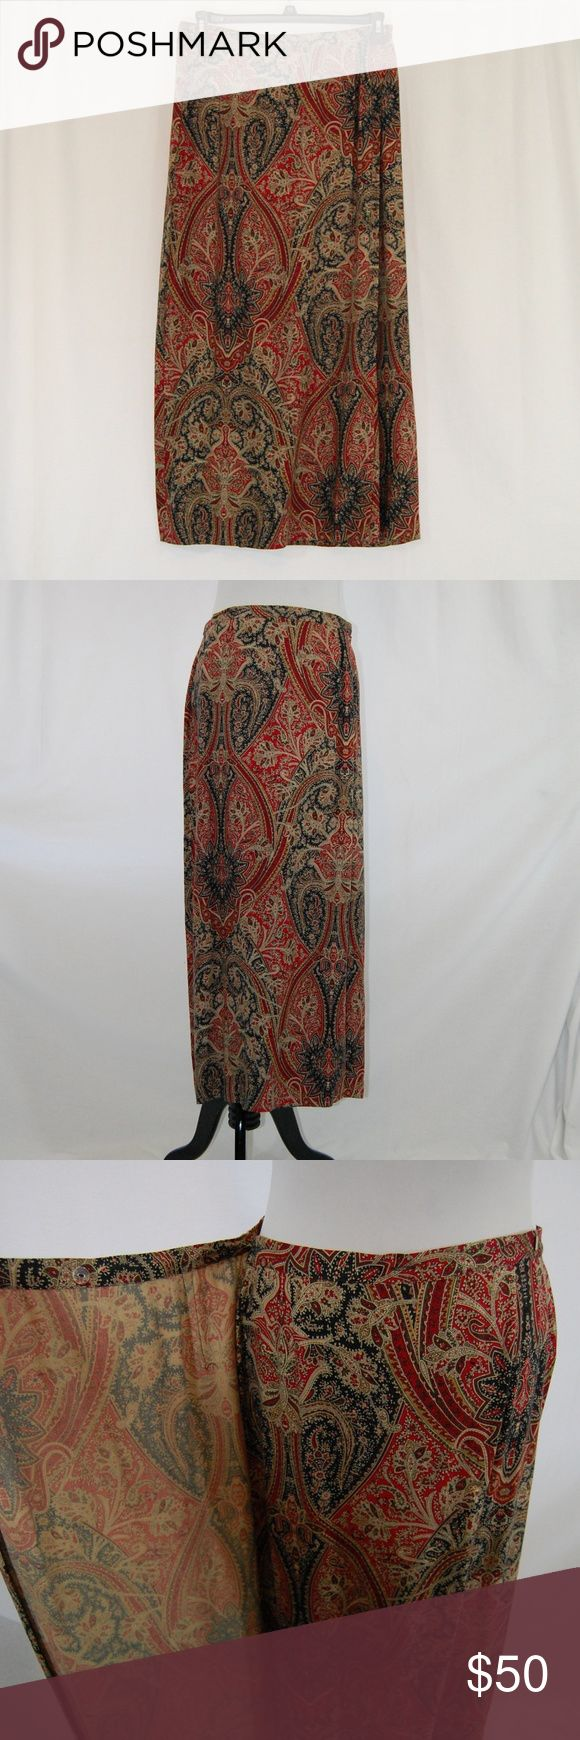 """🆕 Talbots Oriental Rug Style Wrap Skirt Long skirt (midi or maxi - depending on your height - see measurements)  Wrap style with a hook and a button to secure it at the waist. 92% Rayon / 8% Wool  Oriental Rug / Paisley design. Rich beautiful colors!  Excellent condition and dry cleaned already.  Approximate measurements (taken flat & buttoned): Waist = 15.5"""" Length = 37""""  <R24> Talbots Skirts Maxi"""